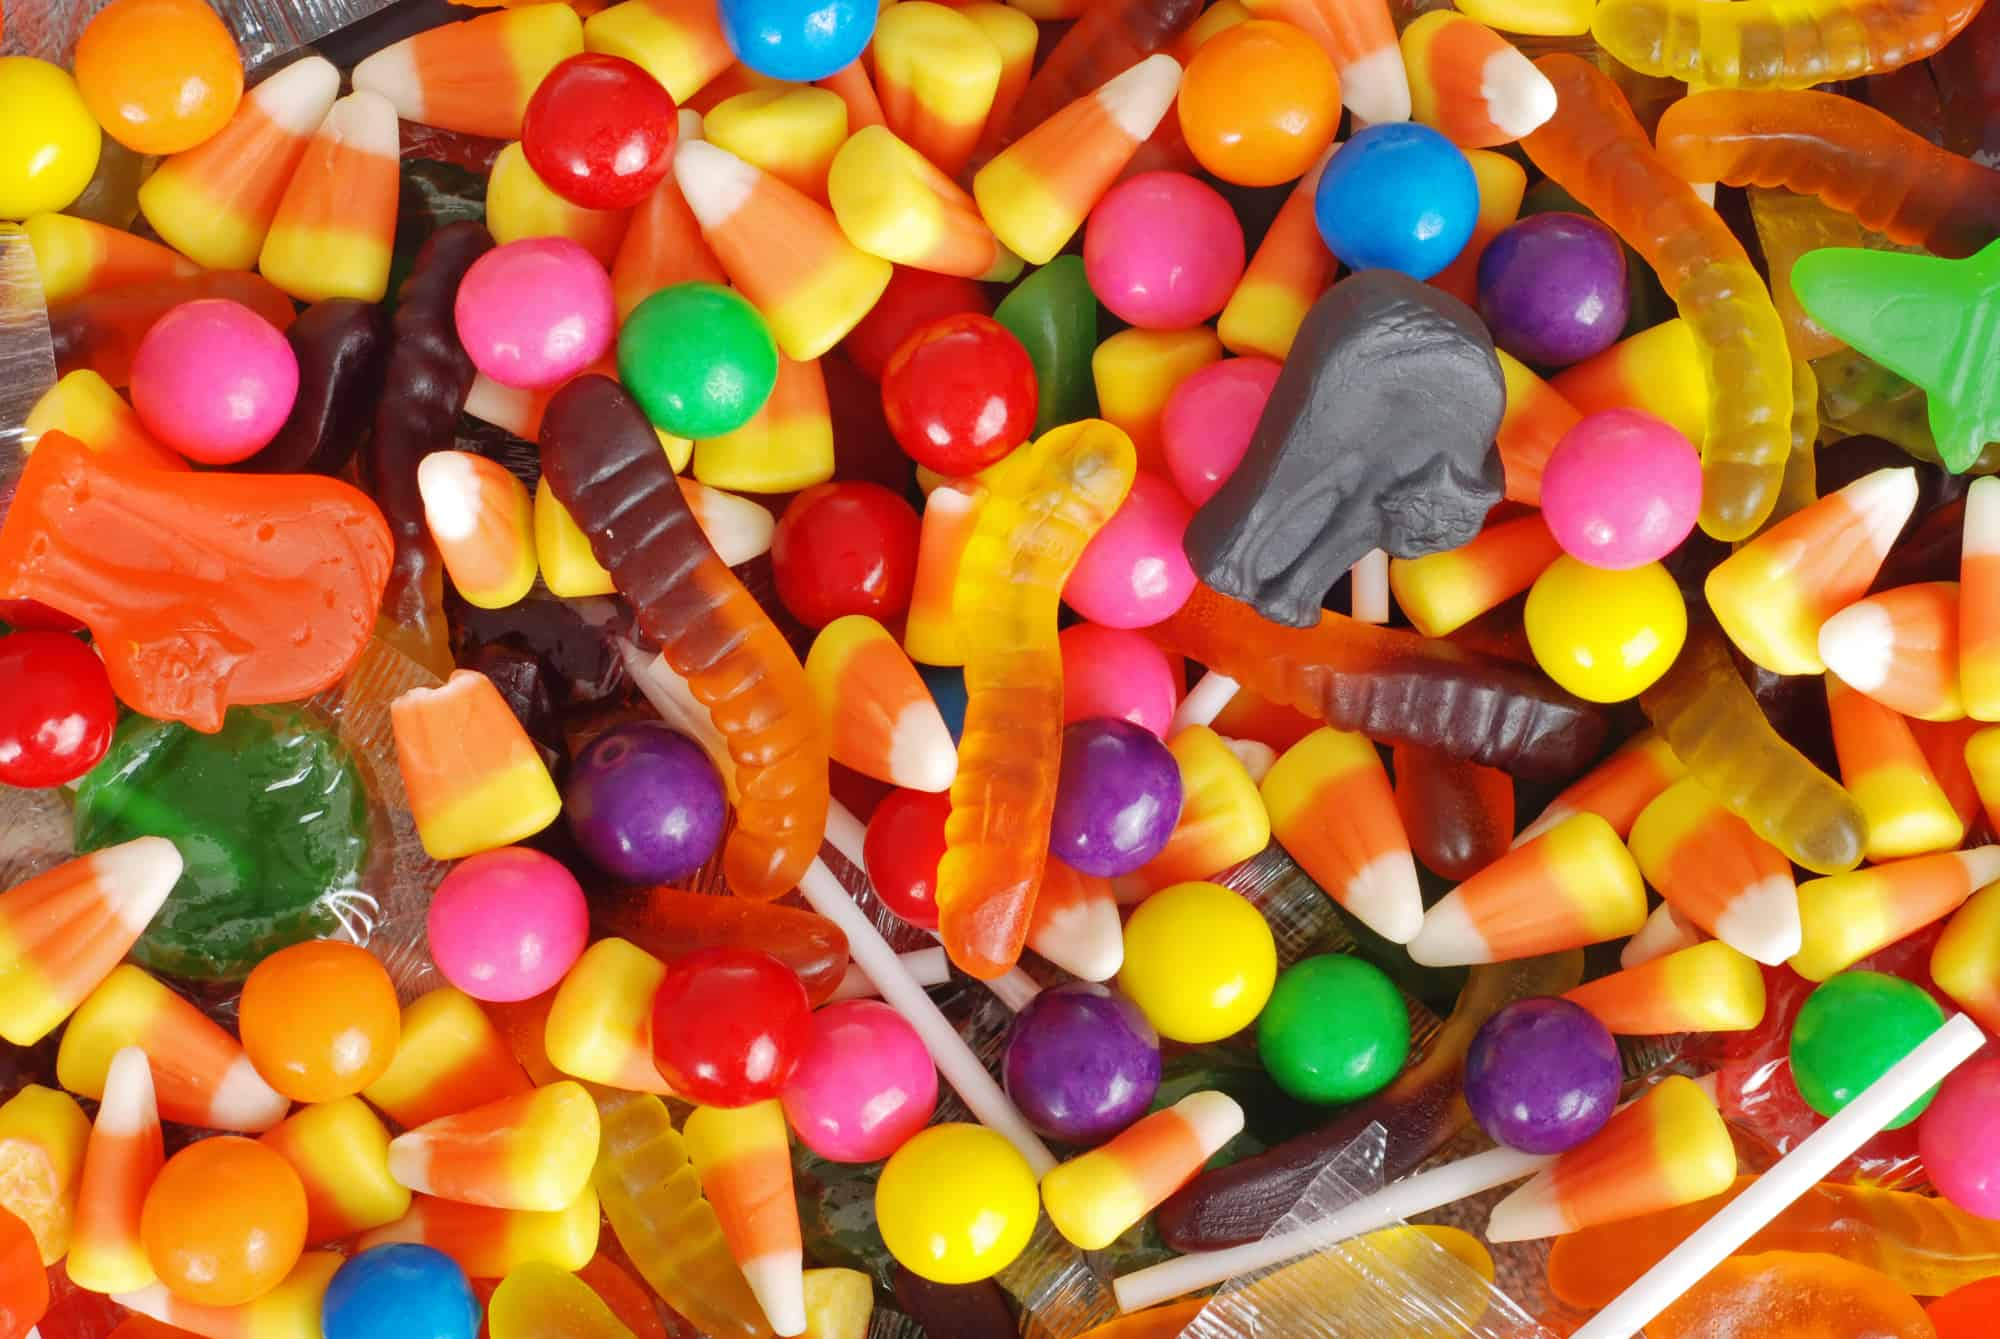 Halloween candy on the table